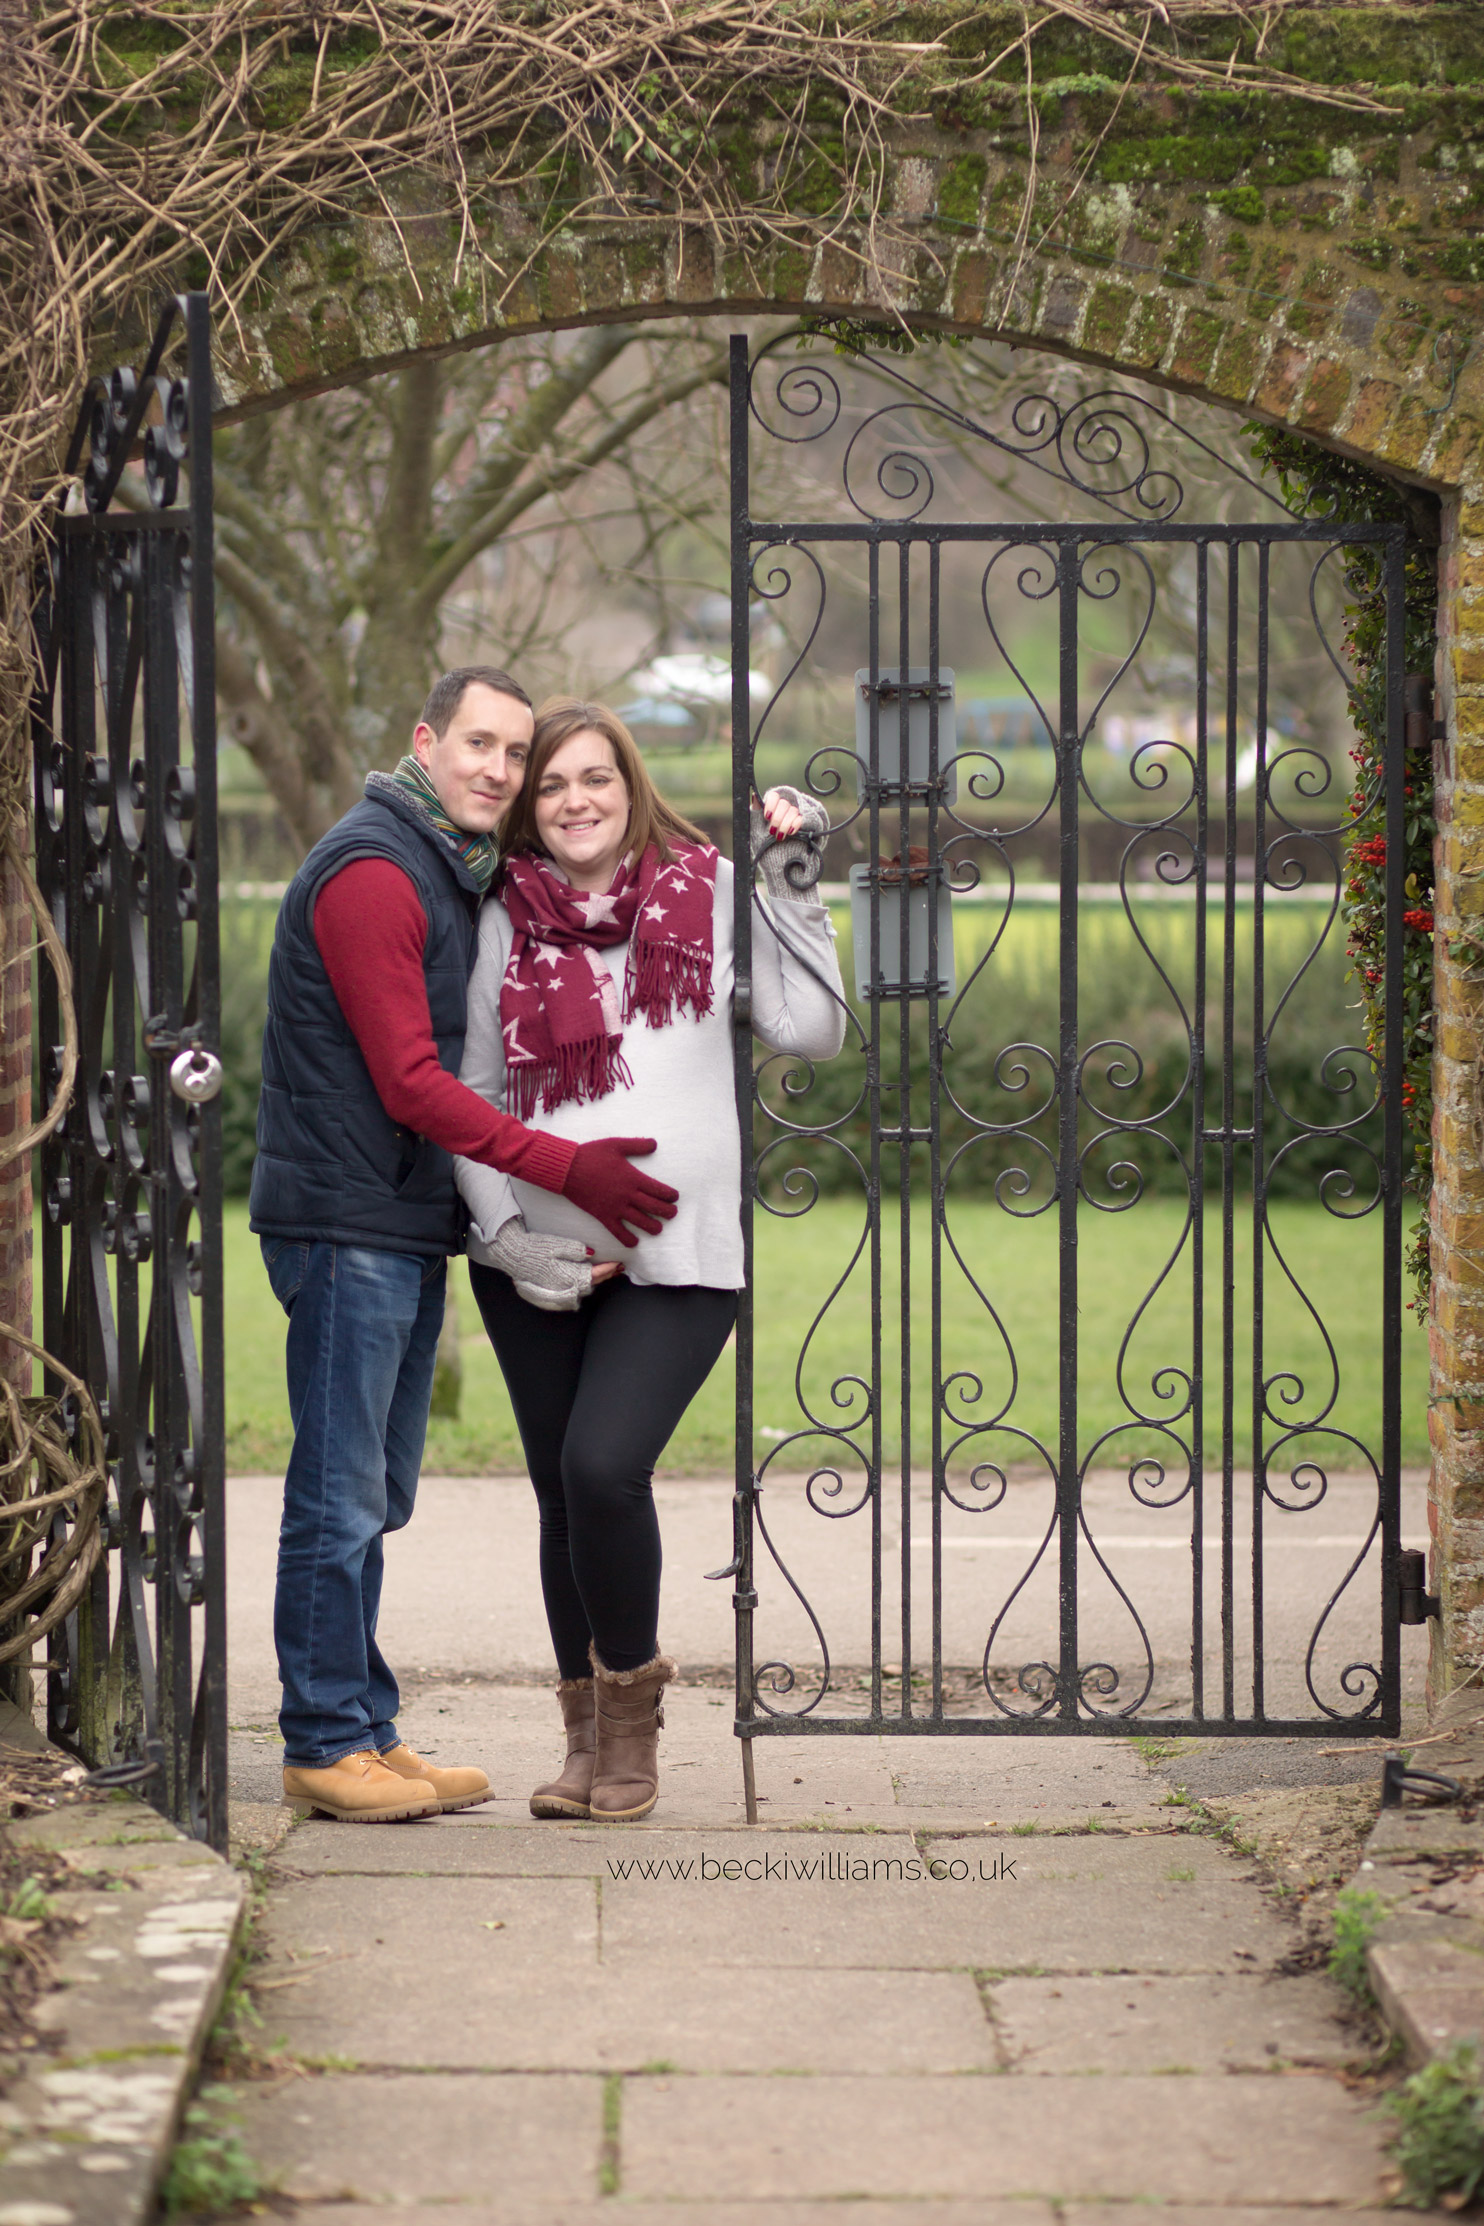 maternity-photo-shoot-hemel-hempstead-gadebridge-park-walled-garden-gate-couple.jpg